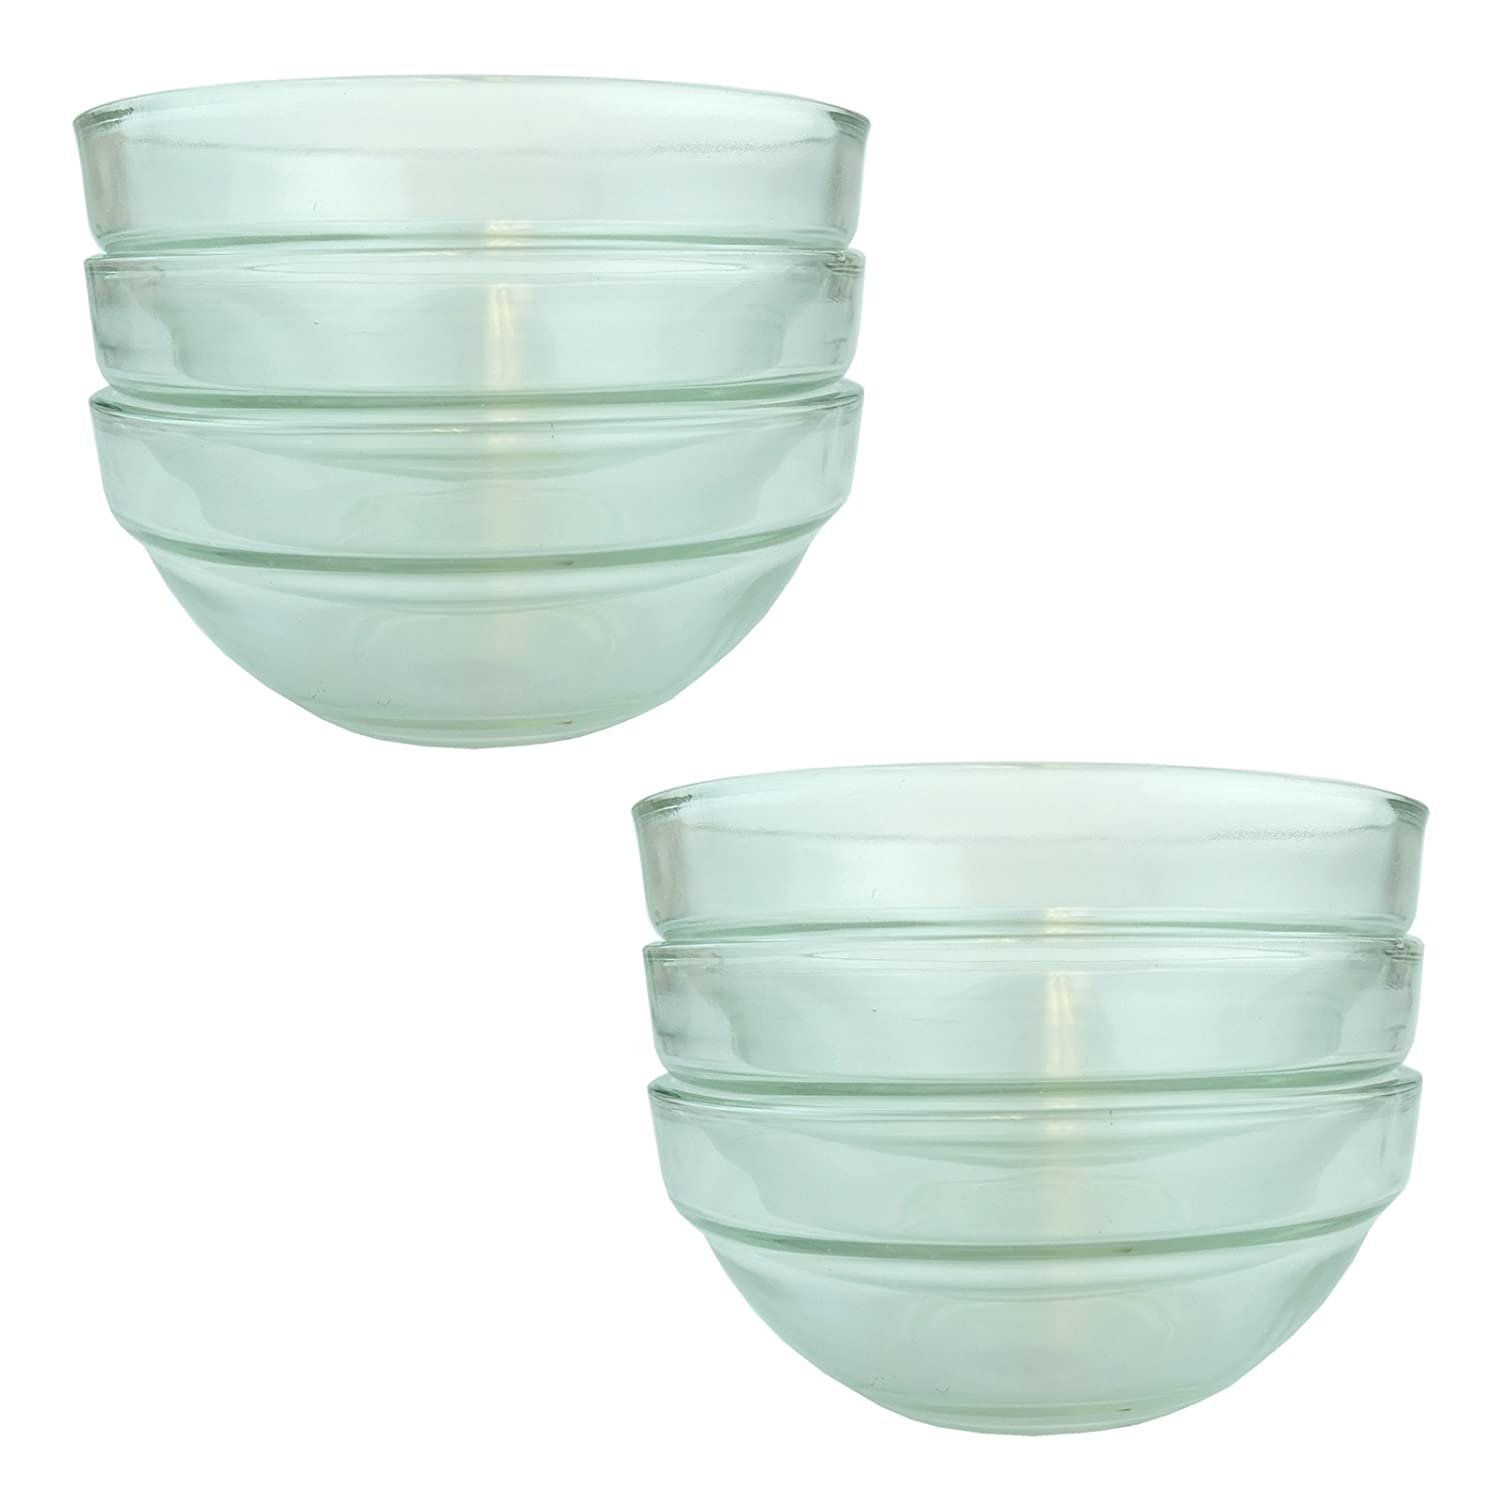 Bid Buy Direct® Stackable Glass Bowls Sets in Various Sizes - Extremely Durable Tempered Clear Glass | Multi-Purpose for Kitchen Preparations, Desserts, Dips and Candy Dishes or Nut Bowls! (4 x 12.5cm)